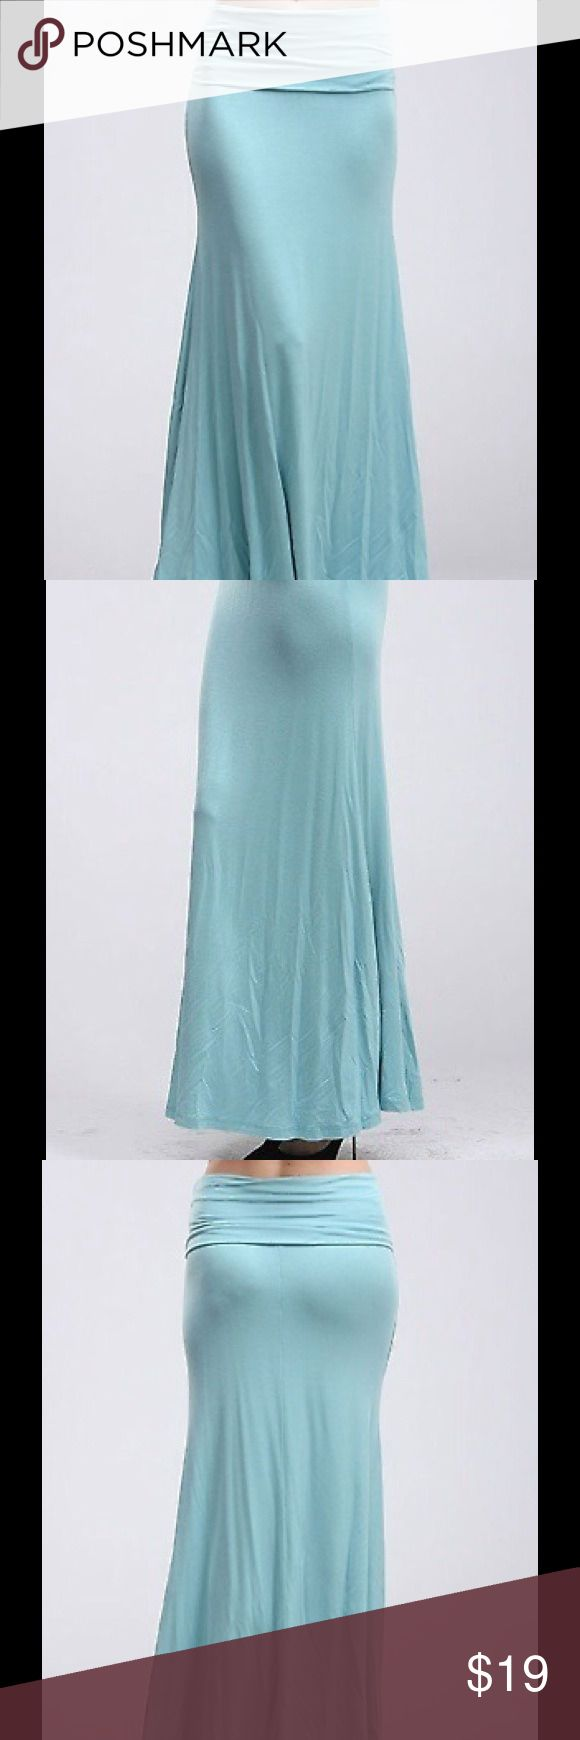 Full Length Maxi Skirt in Mint Full length solid skirt with an overlapped waist and asymmetrical hem.  Perfect color for the season and so trendy for the fall.  95% Rayon 5% Spandex Skirts Maxi